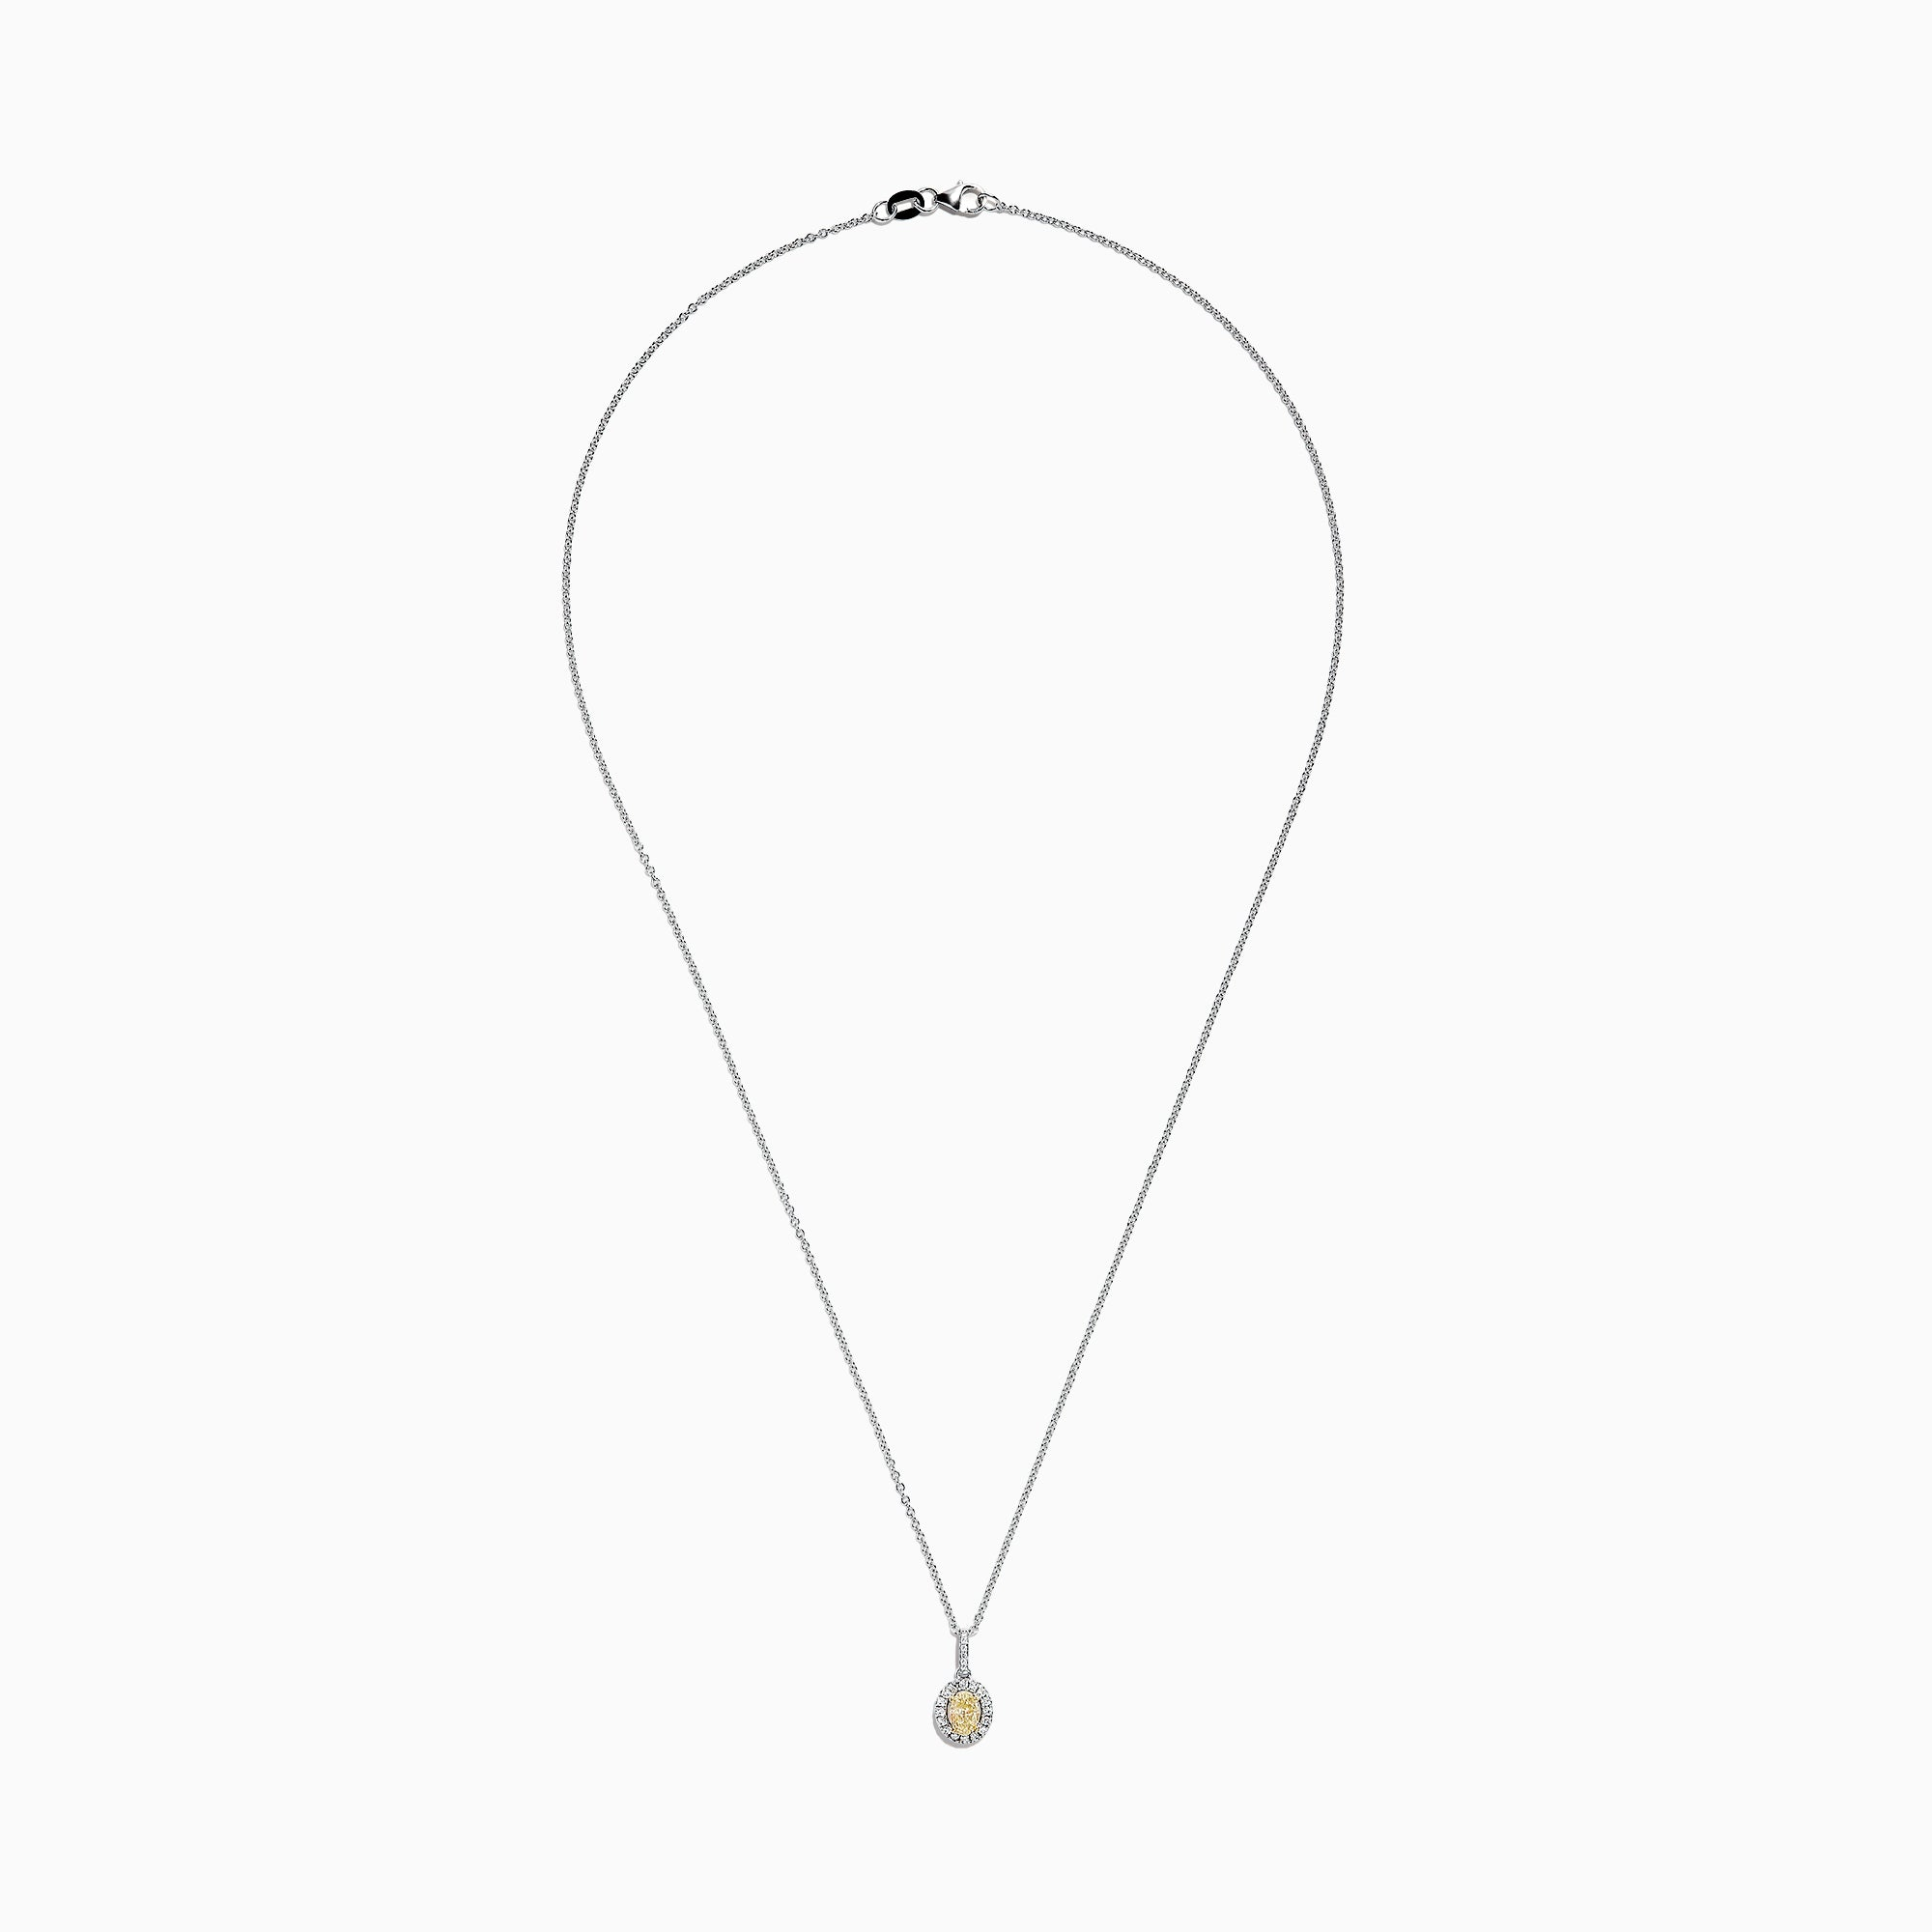 Effy Canare 18K Two-Tone Gold Yellow and White Diamond Pendant, 0.46 TCW